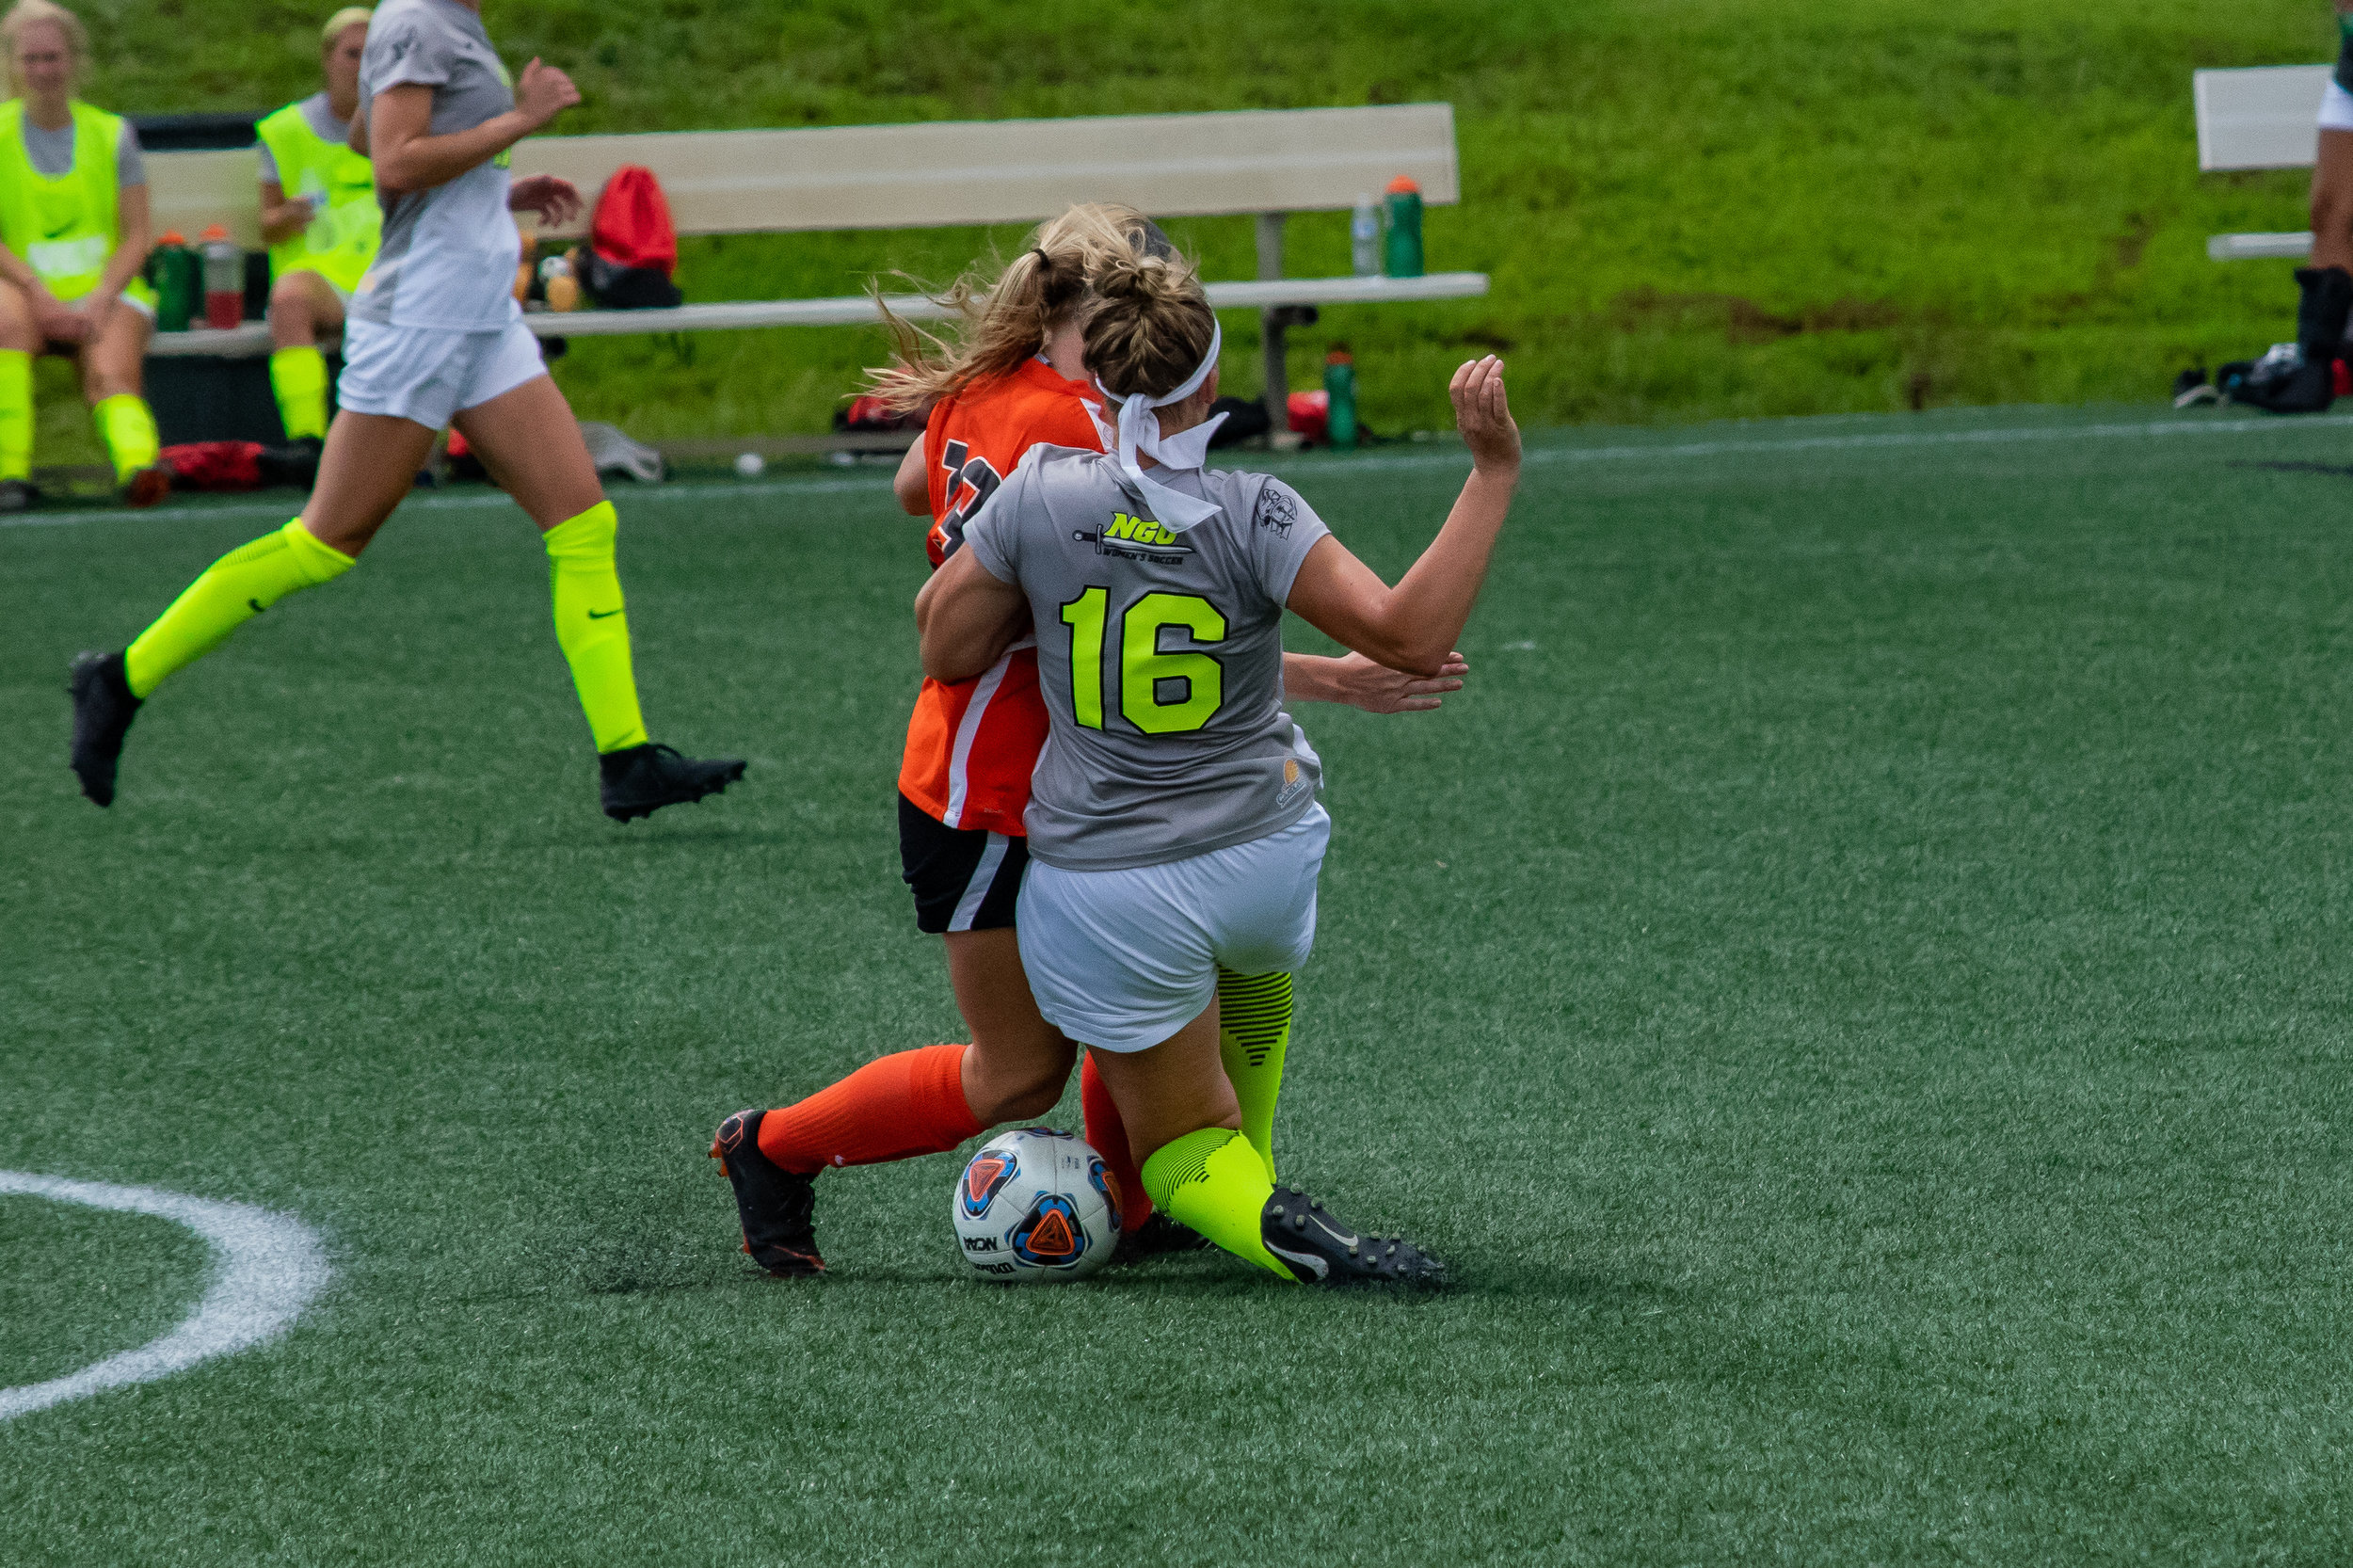 #16 Michaela Gleed runs into the opposing player trying to pass the ball to a team member.